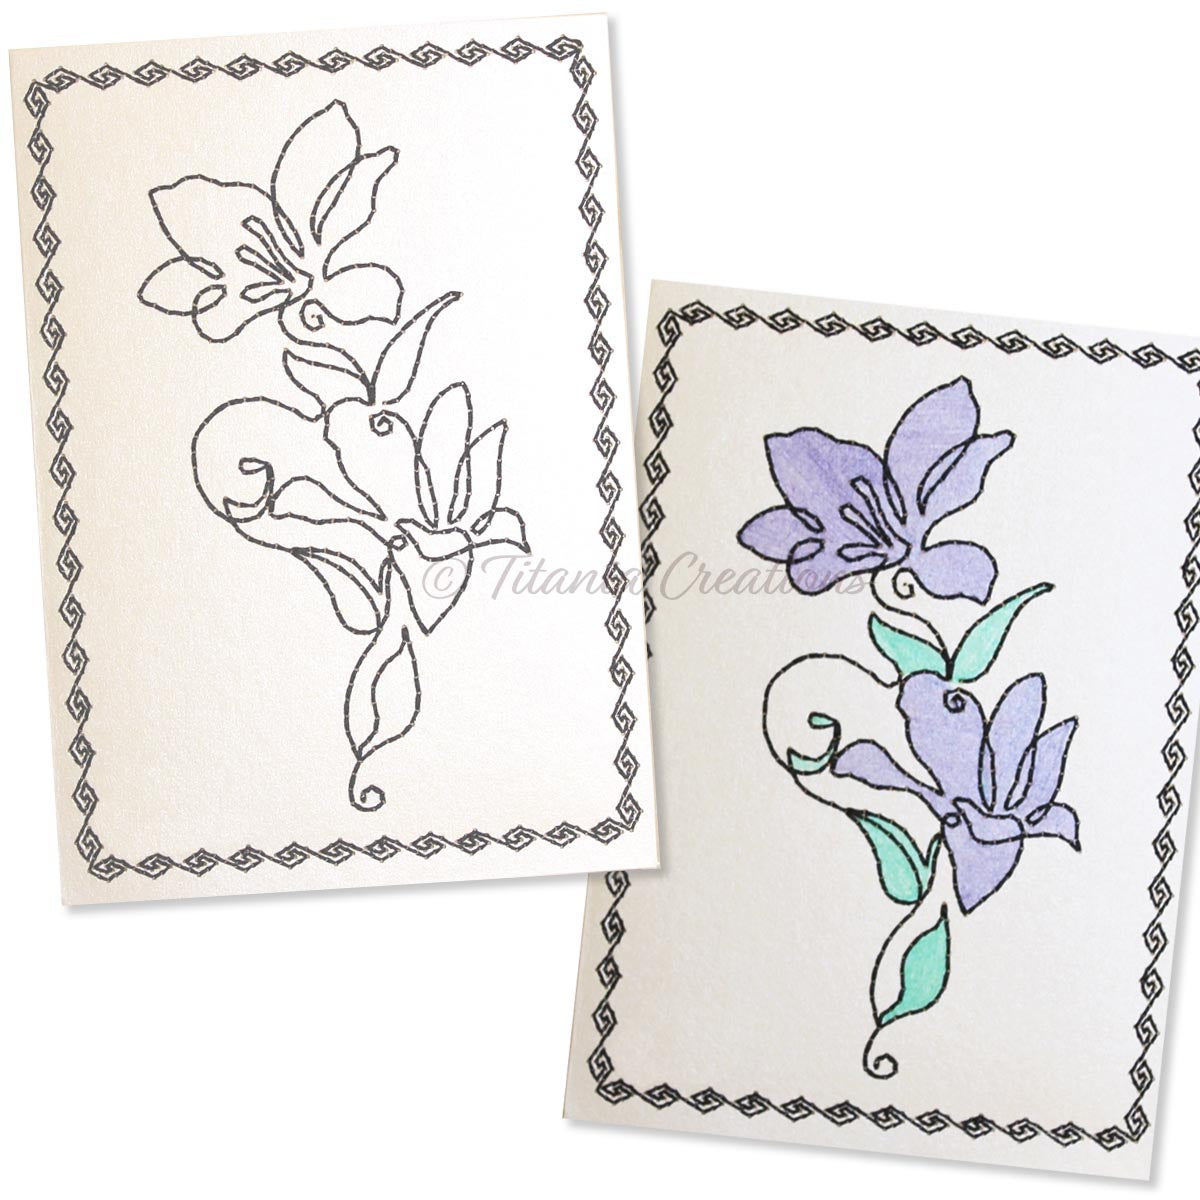 Simply Floral 01 Card Stock Design 5x7